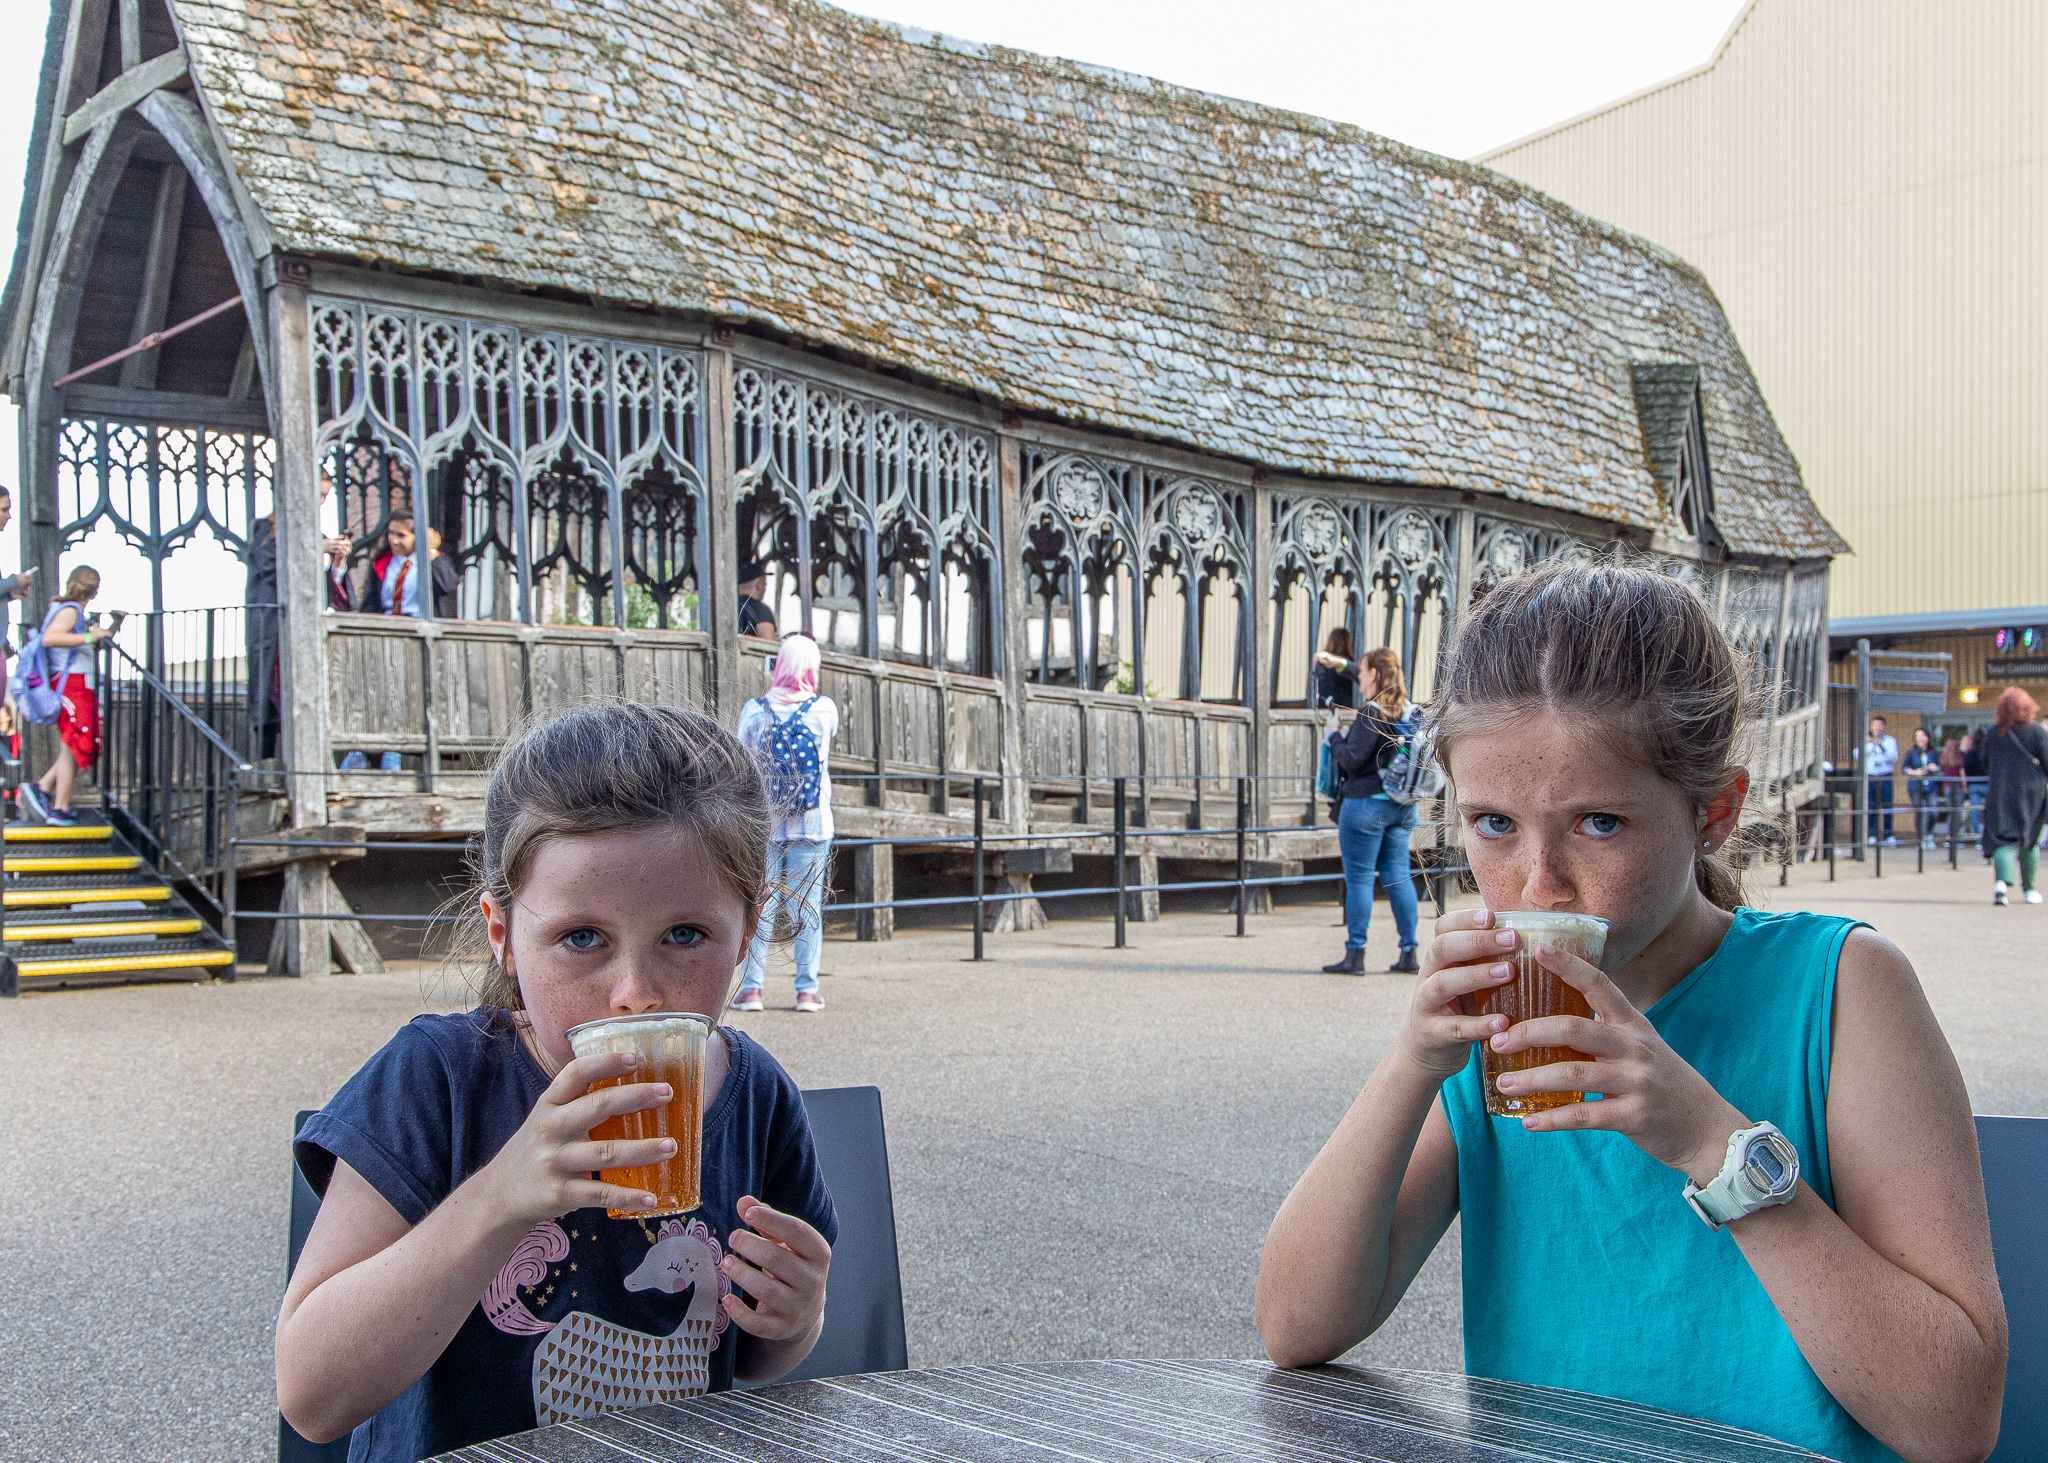 A cleansing beer in front of the Covered Bridge which was used at Hogwarts.